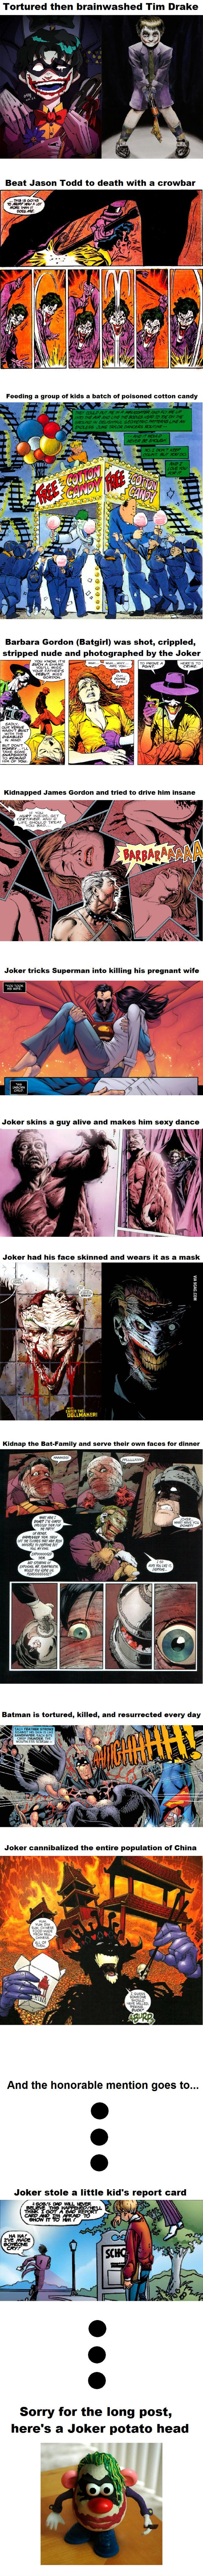 Why the Joker is one of the most f**ked up villains of all time. - 9GAG